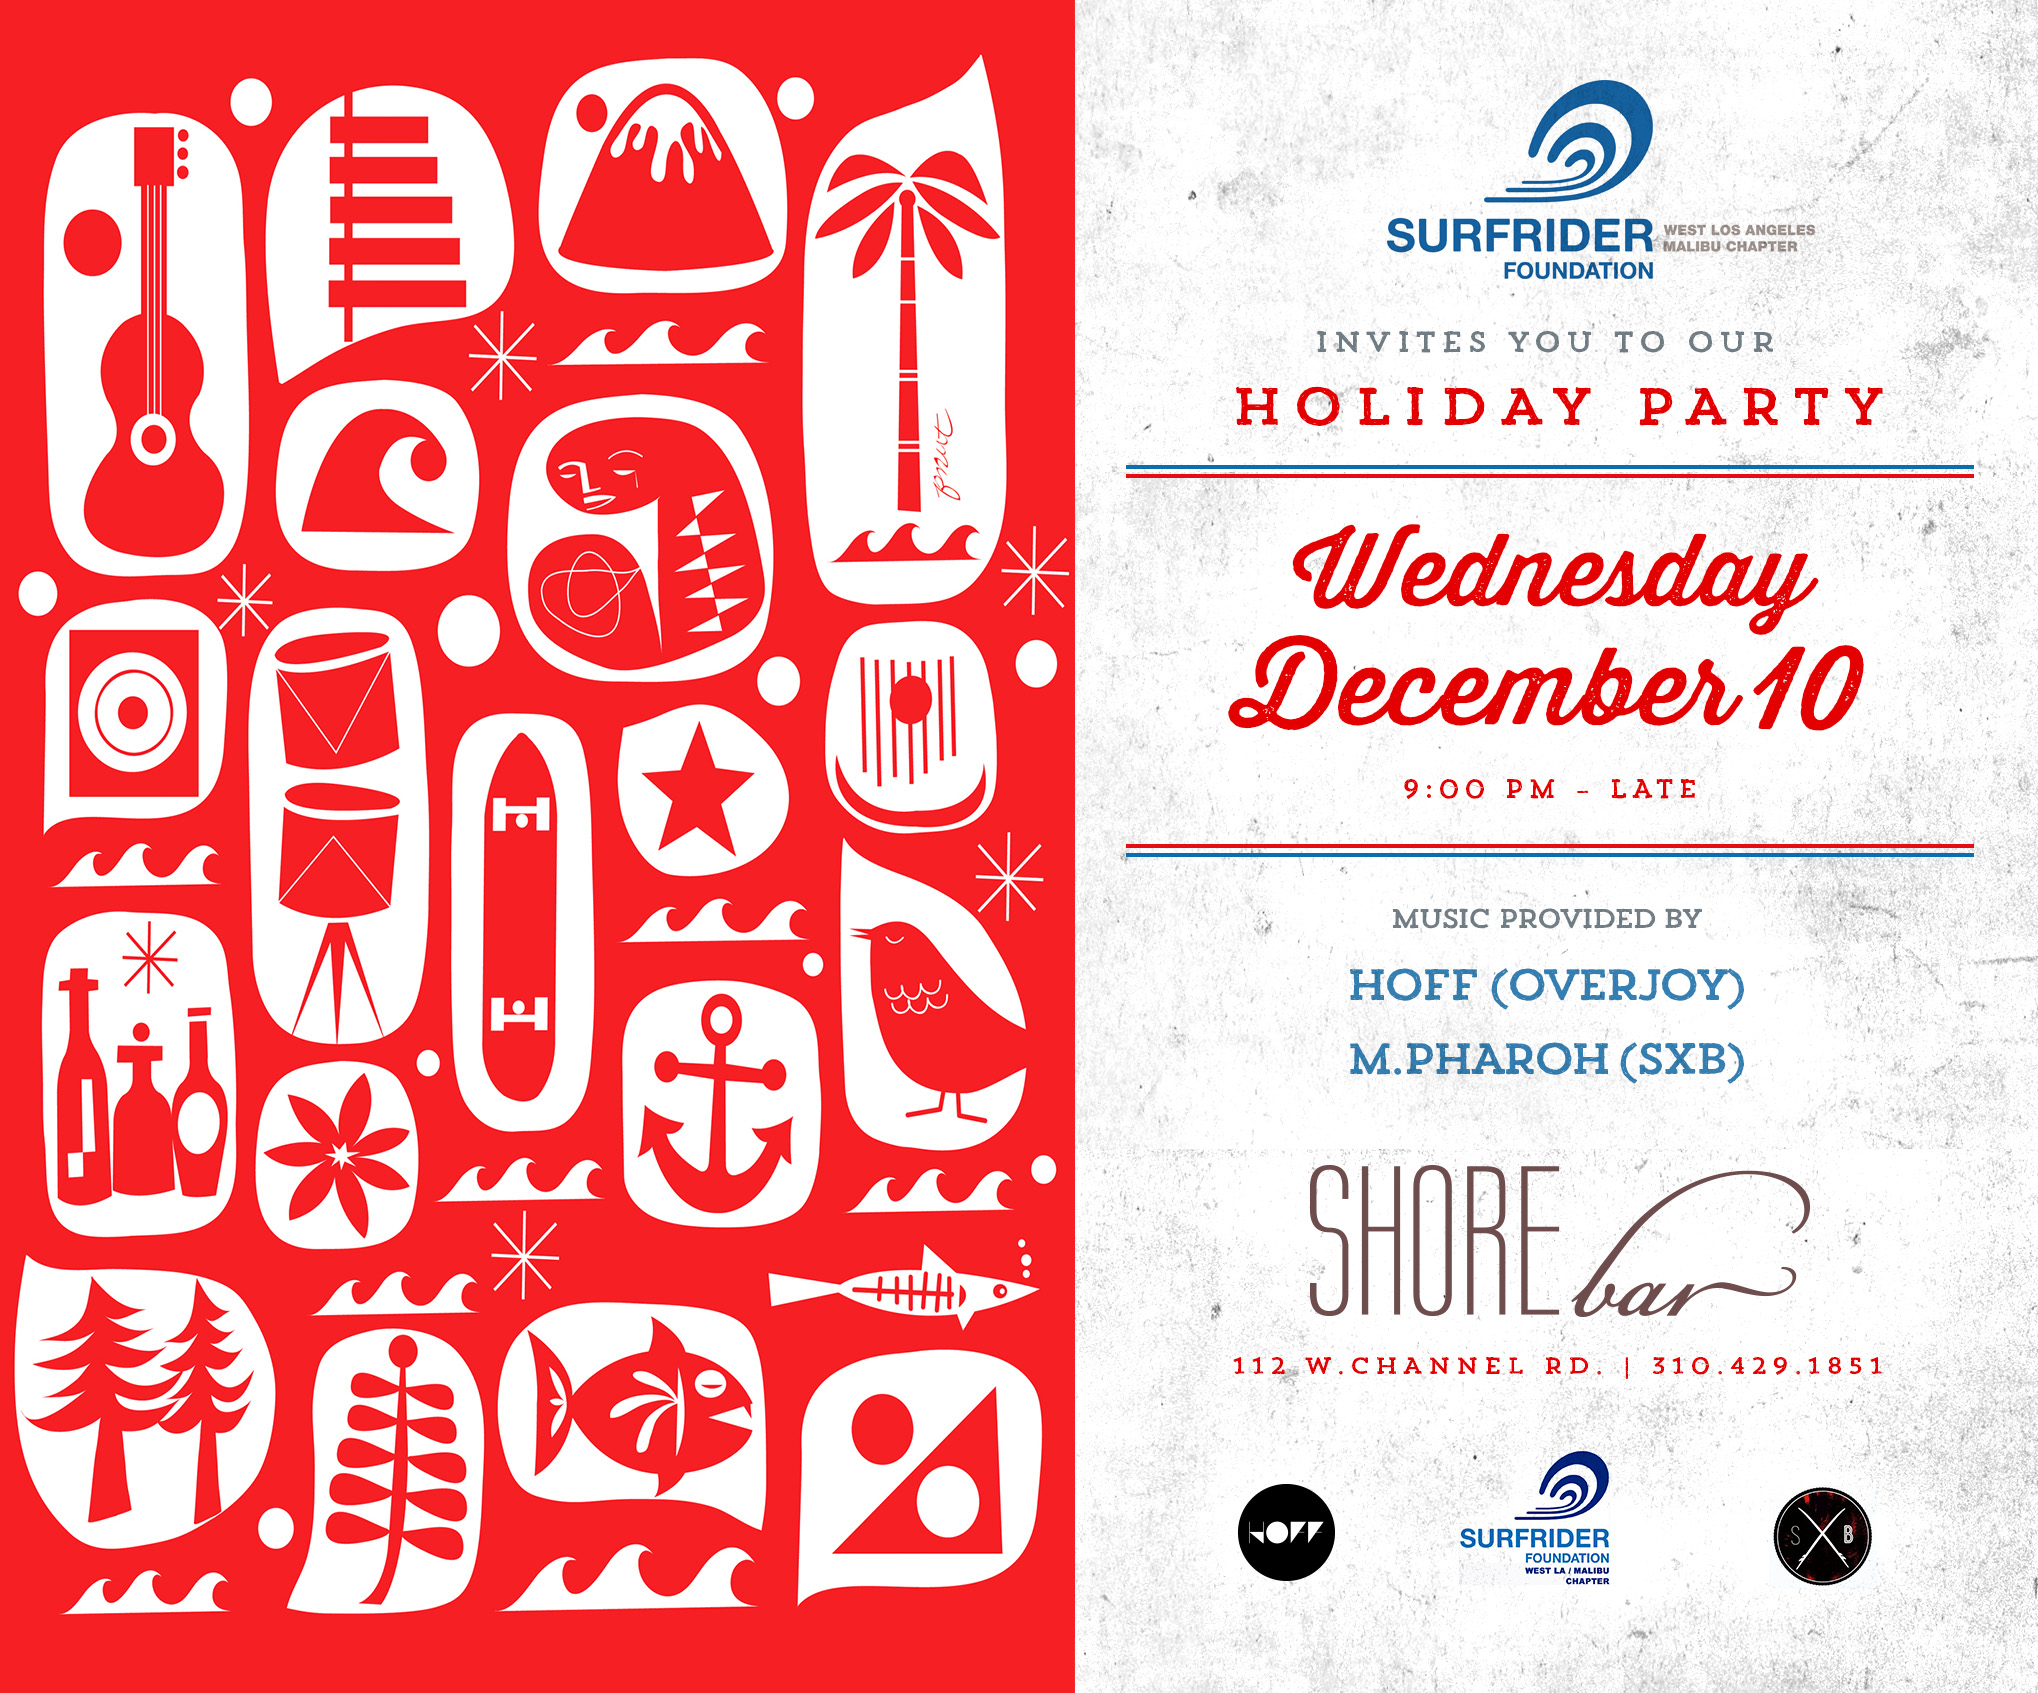 SURFRIDER WLAM HOLIDAY PARTY